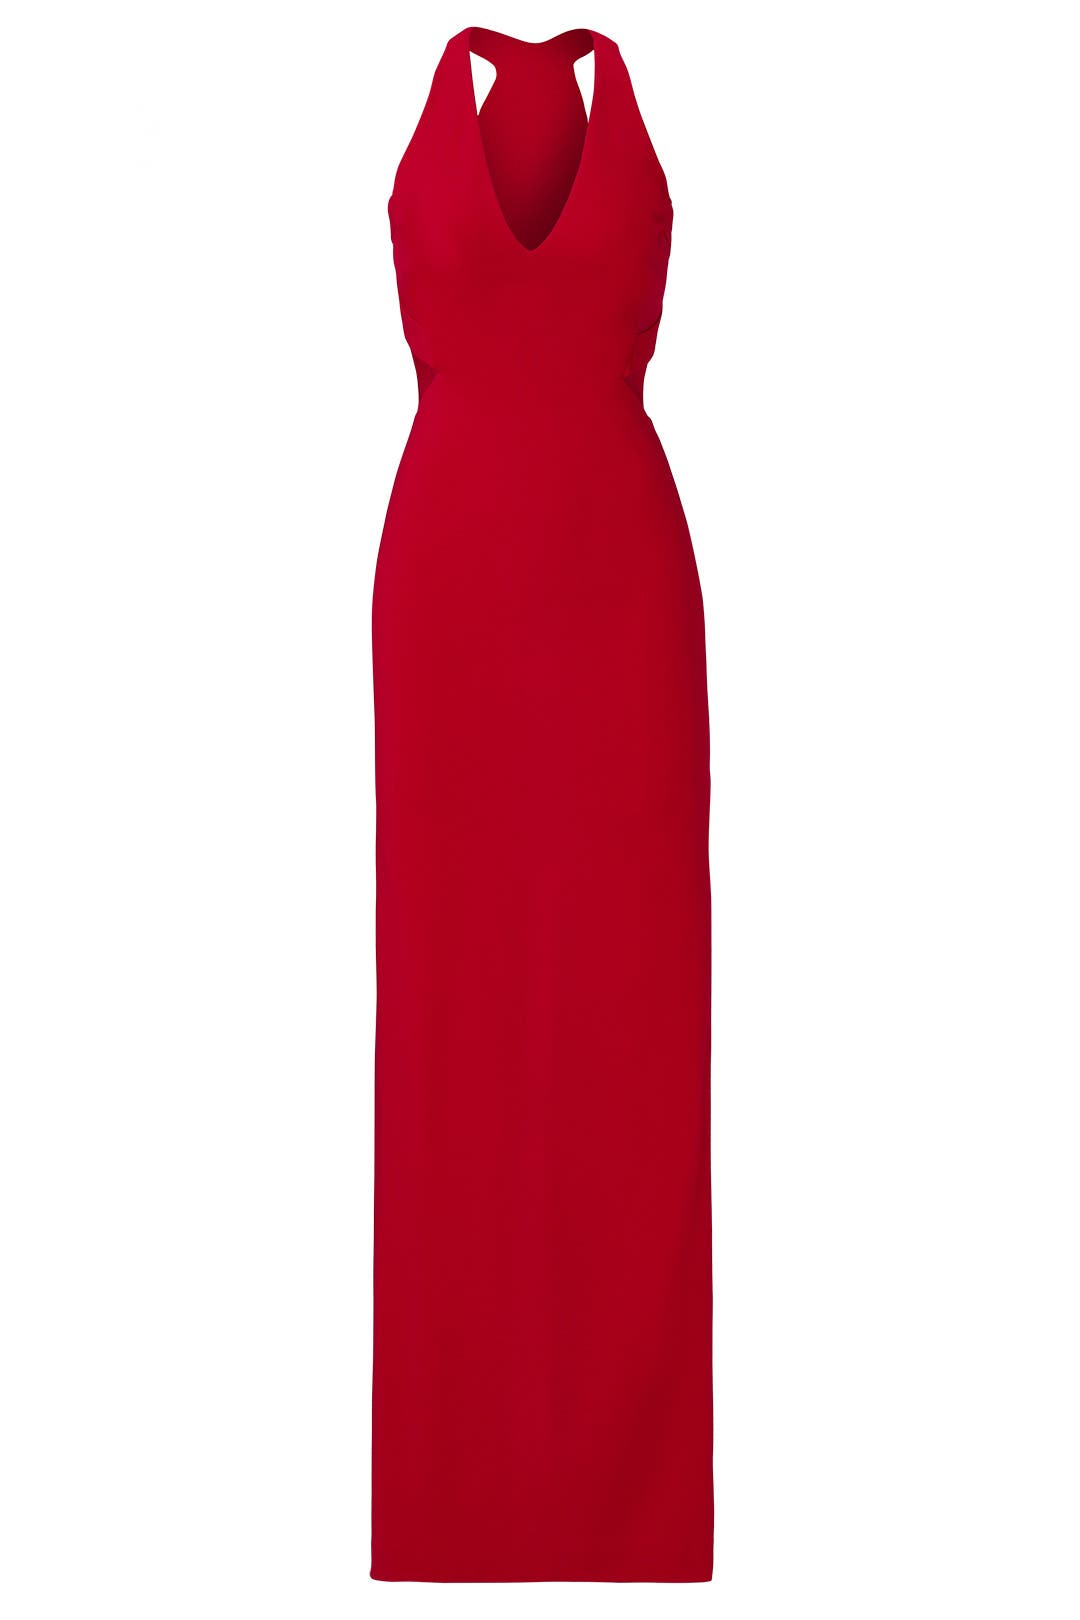 Red Deep Love Gown by Nicole Miller for $50 - $80 | Rent the Runway